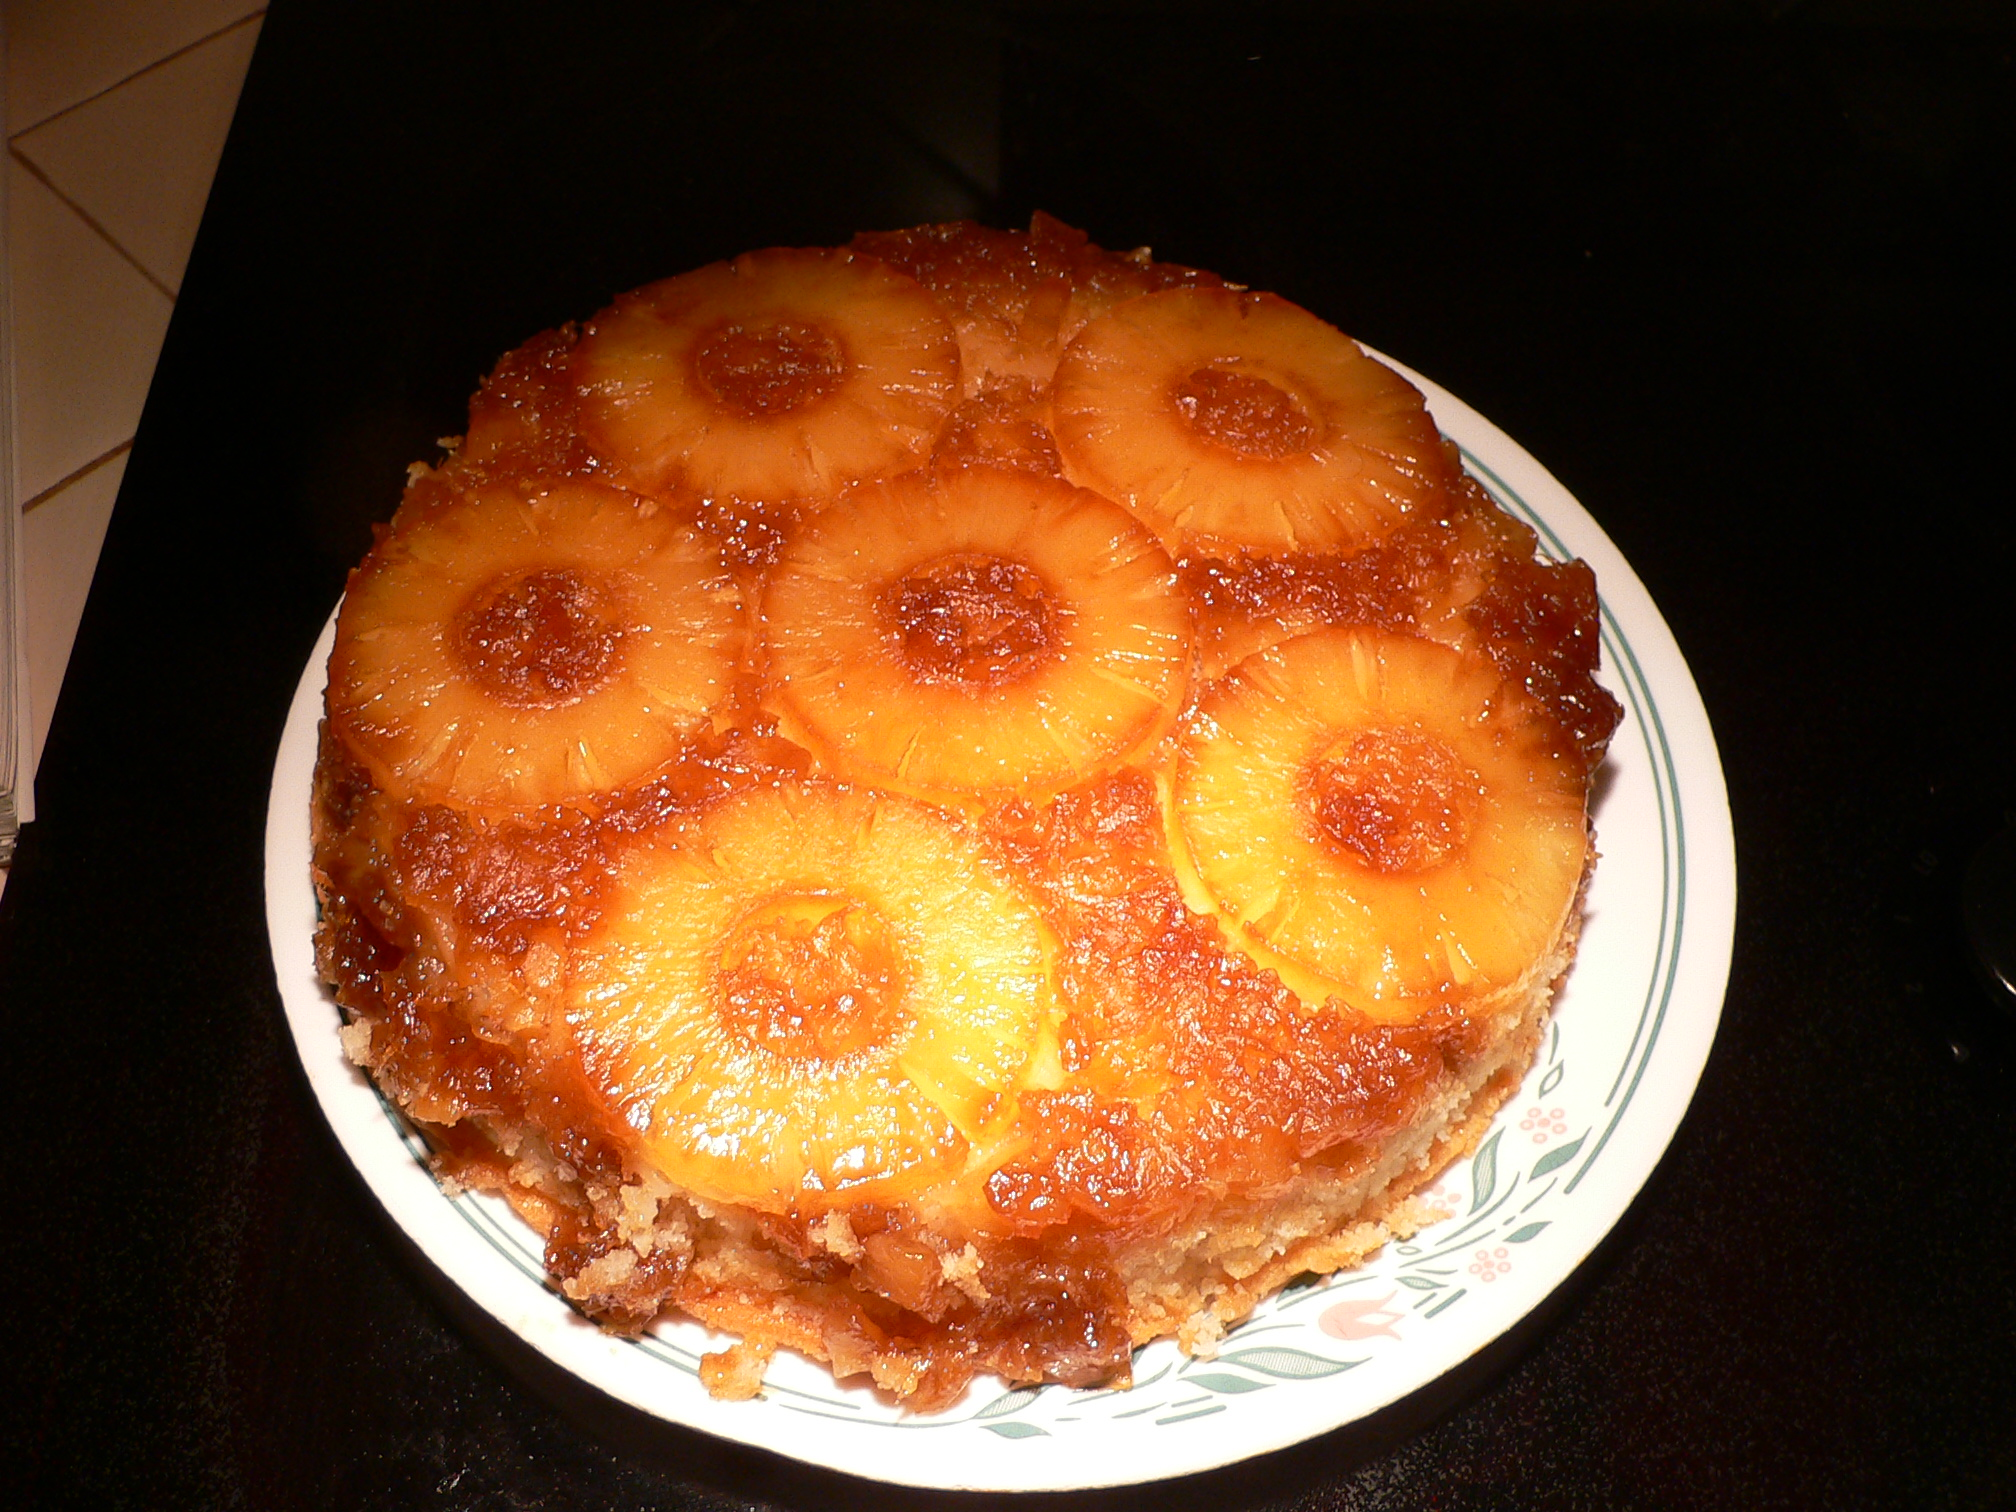 Upside Down Cake Recipe From Scratch